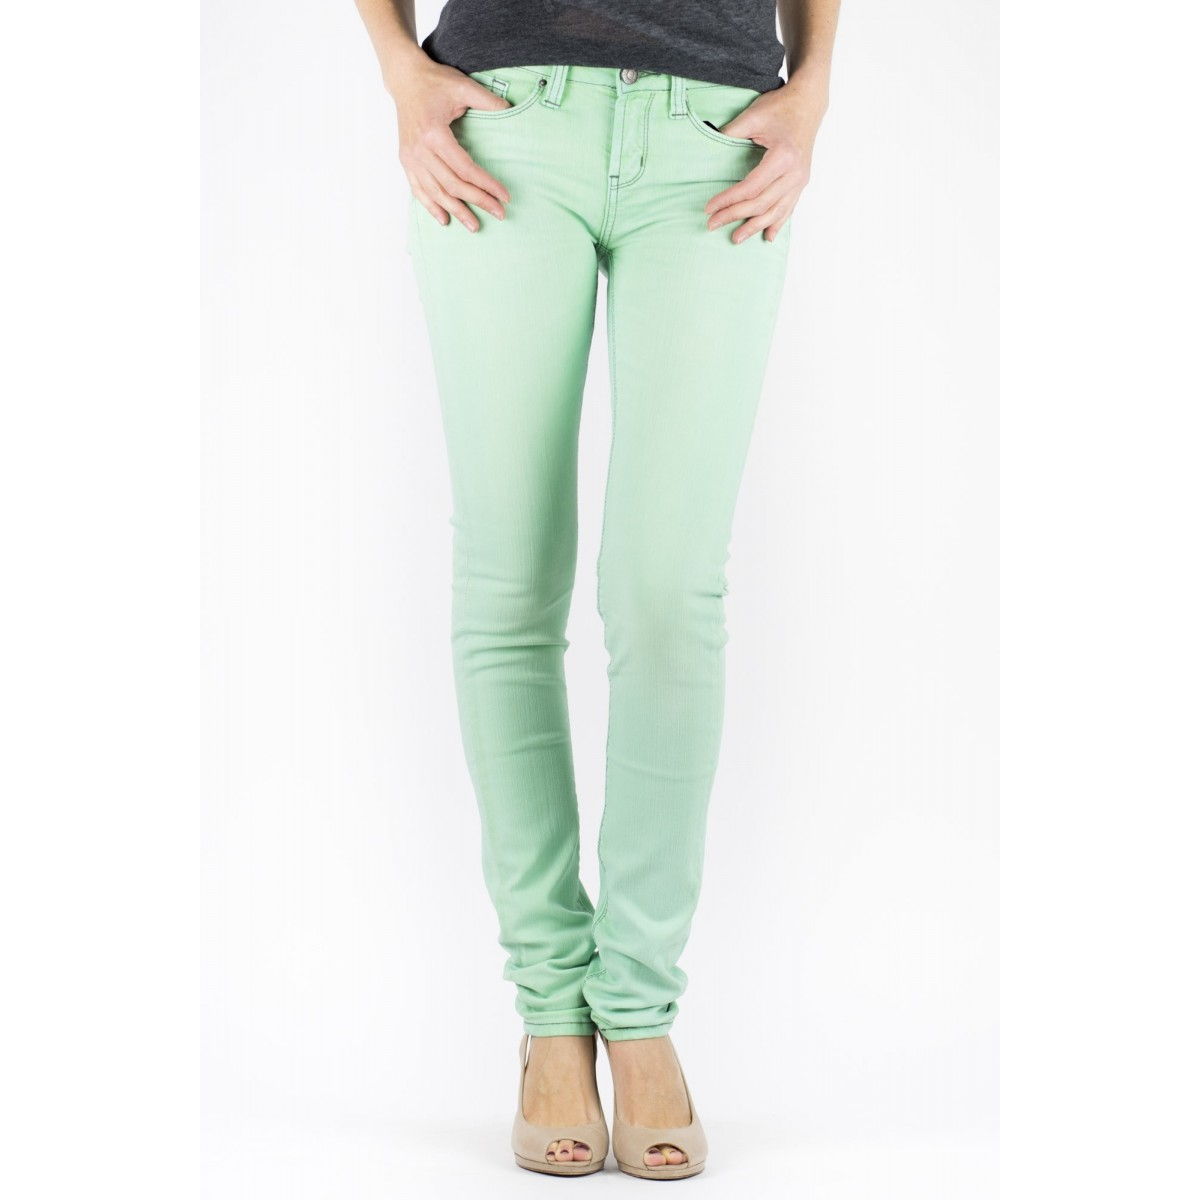 Jeans One Green Elephant Woman - Kosai 2340